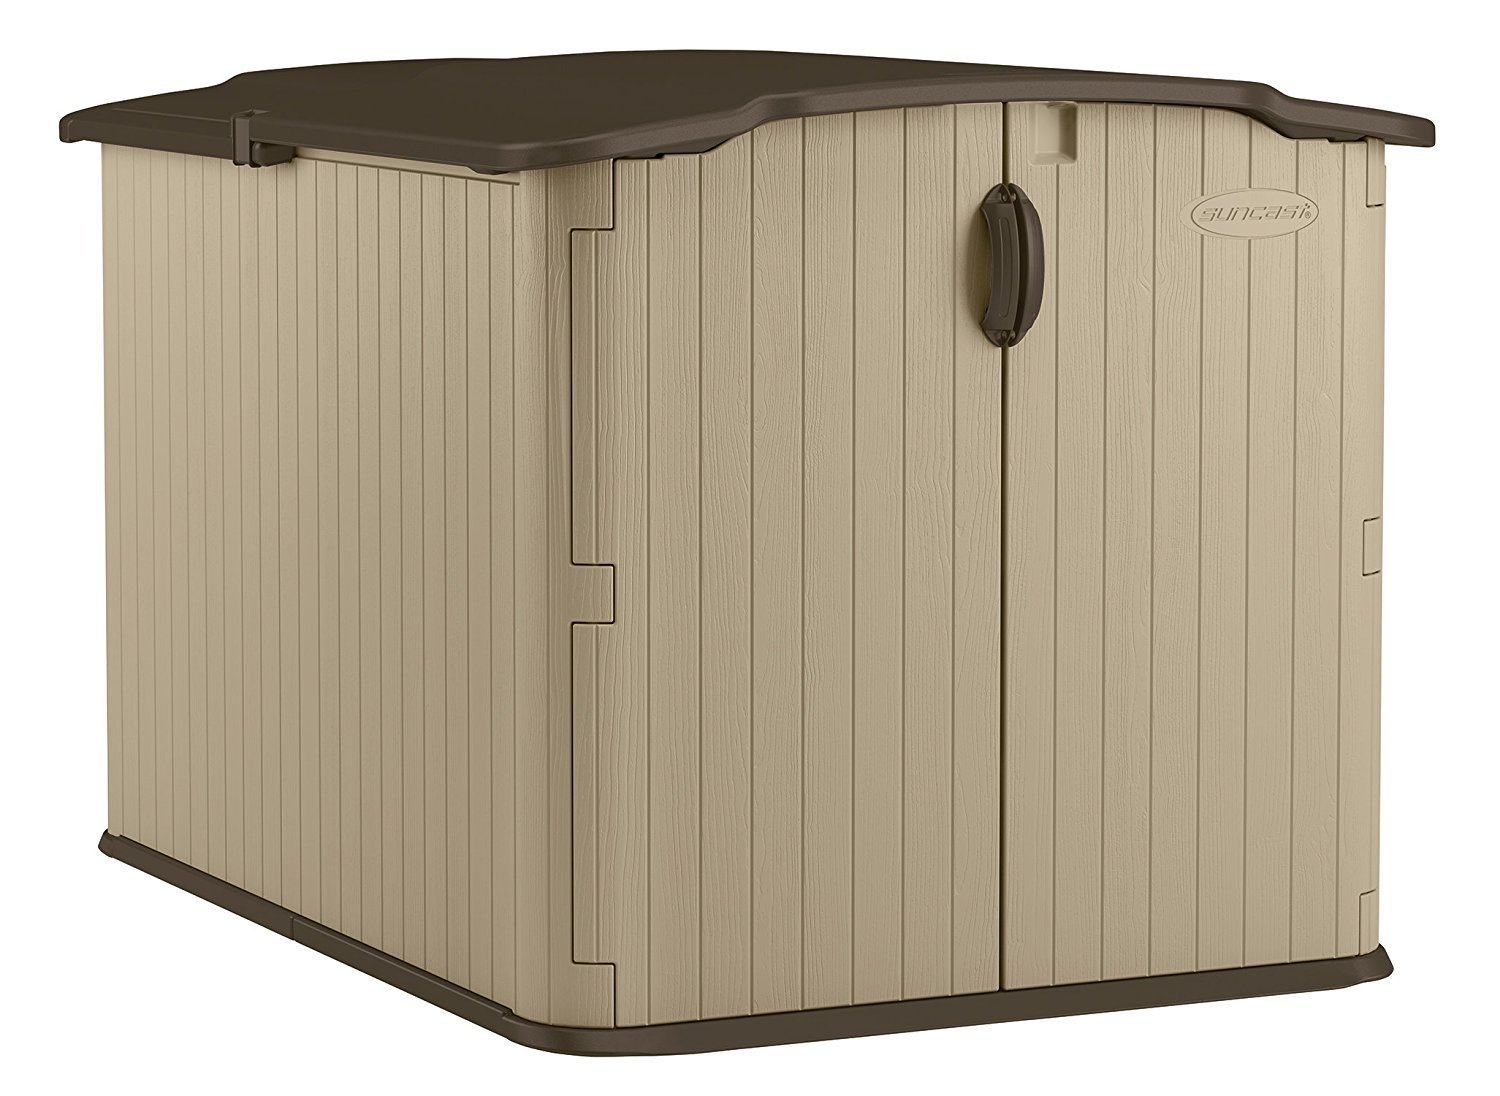 Outdoor Storage Sheds For Sale Home Furniture Design